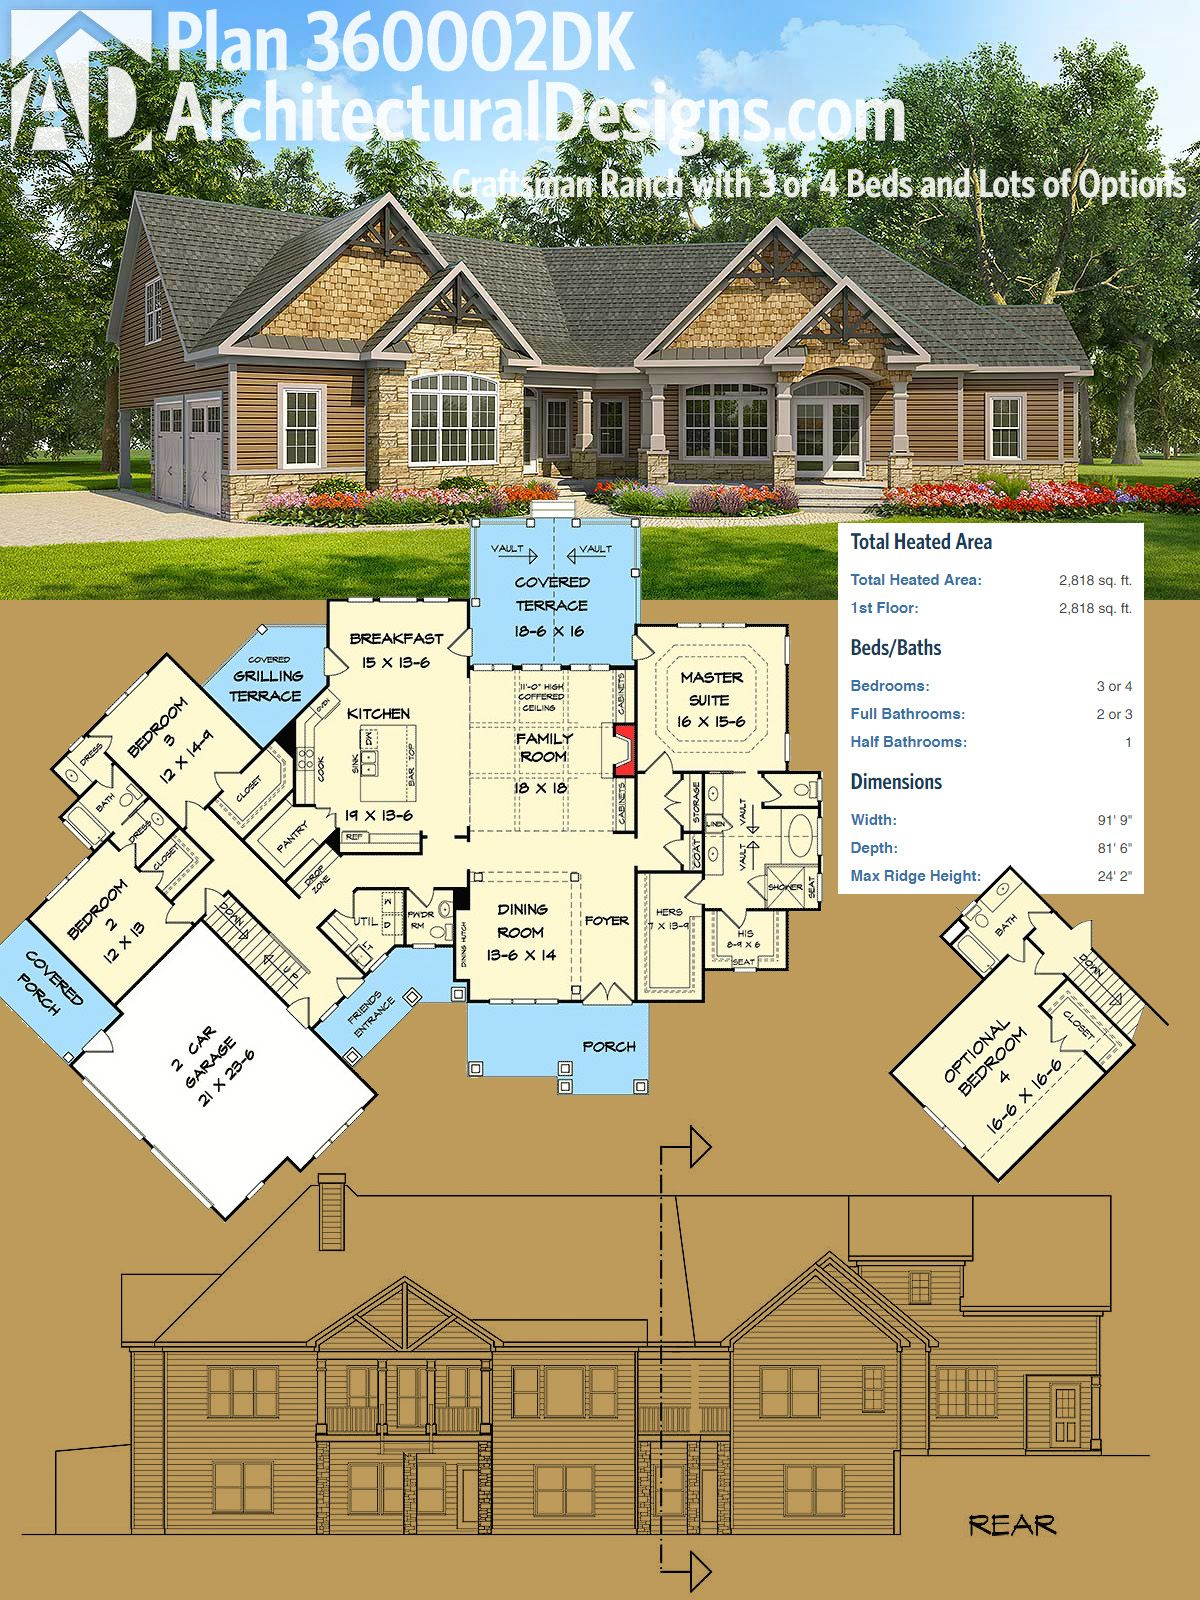 Plan 360002dk Craftsman Ranch With 3 Or 4 Beds And Lots